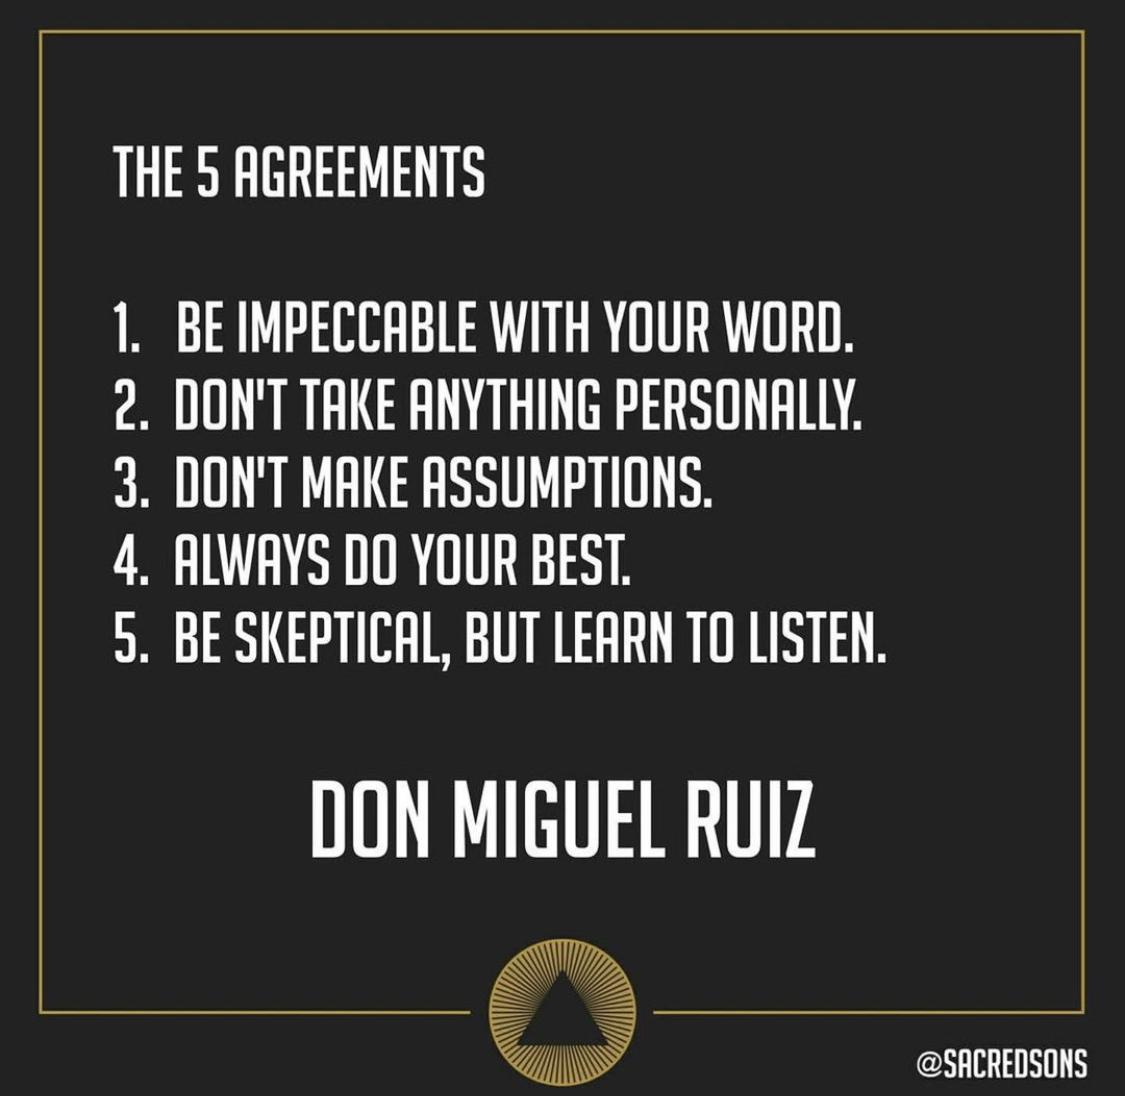 [Image] The 5 Agreements